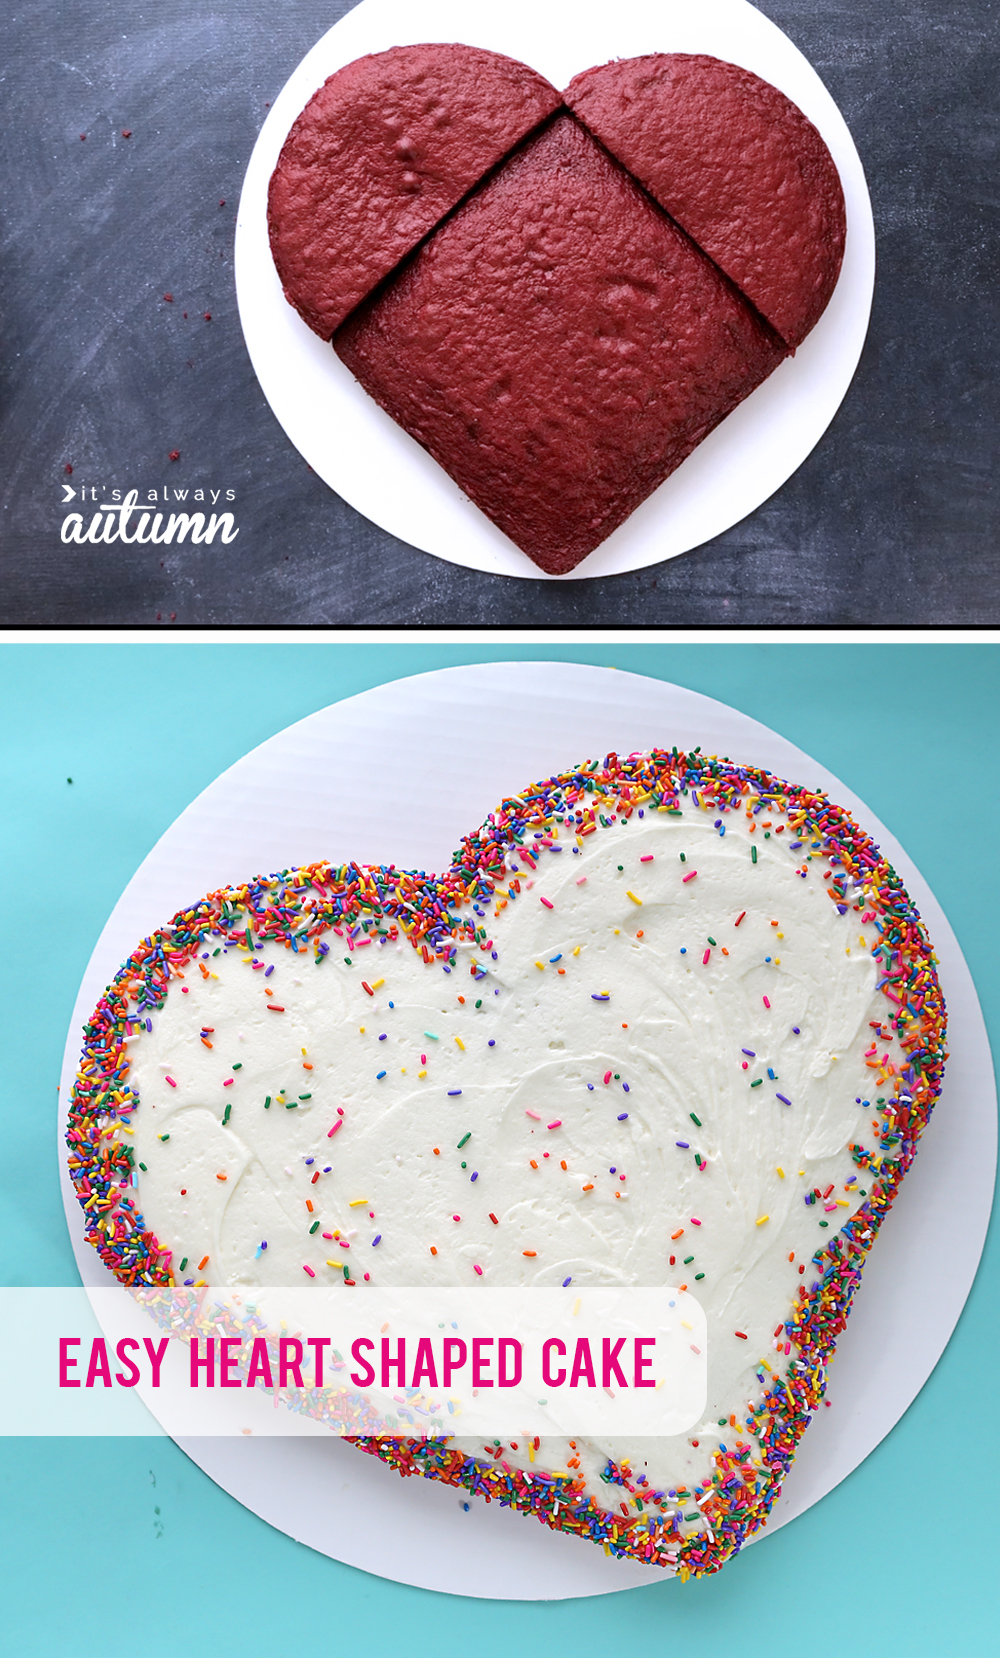 How to make a heart shaped cake for Valentine's Day without a special pan. Super easy instructions. Great Valentine's treat or birthday cake idea.